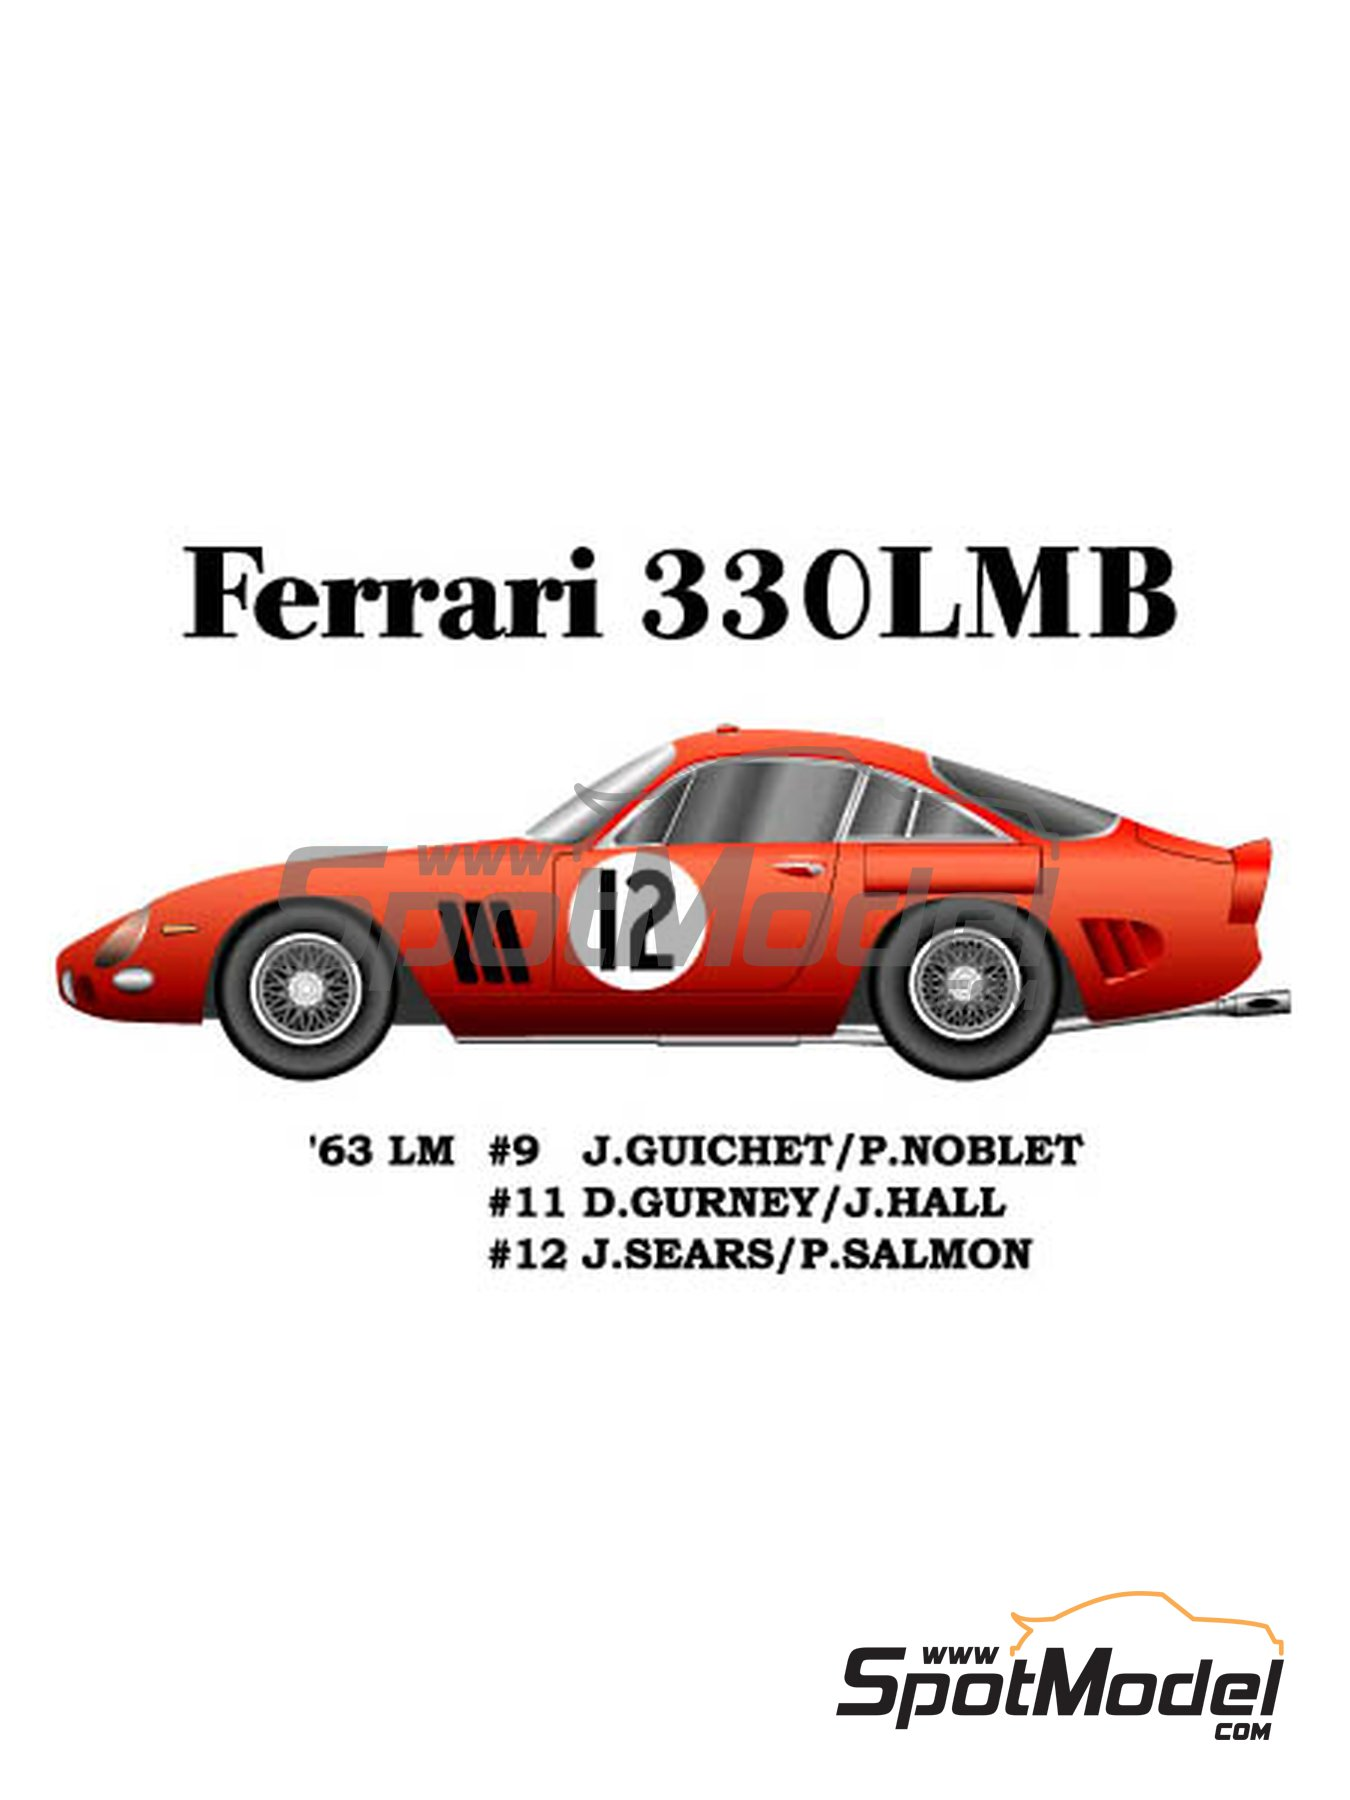 Ferrari 330LMB - 24 Hours Le Mans 1963 | Model car kit in 1/24 scale manufactured by Model Factory Hiro (ref. MFH-K292) image